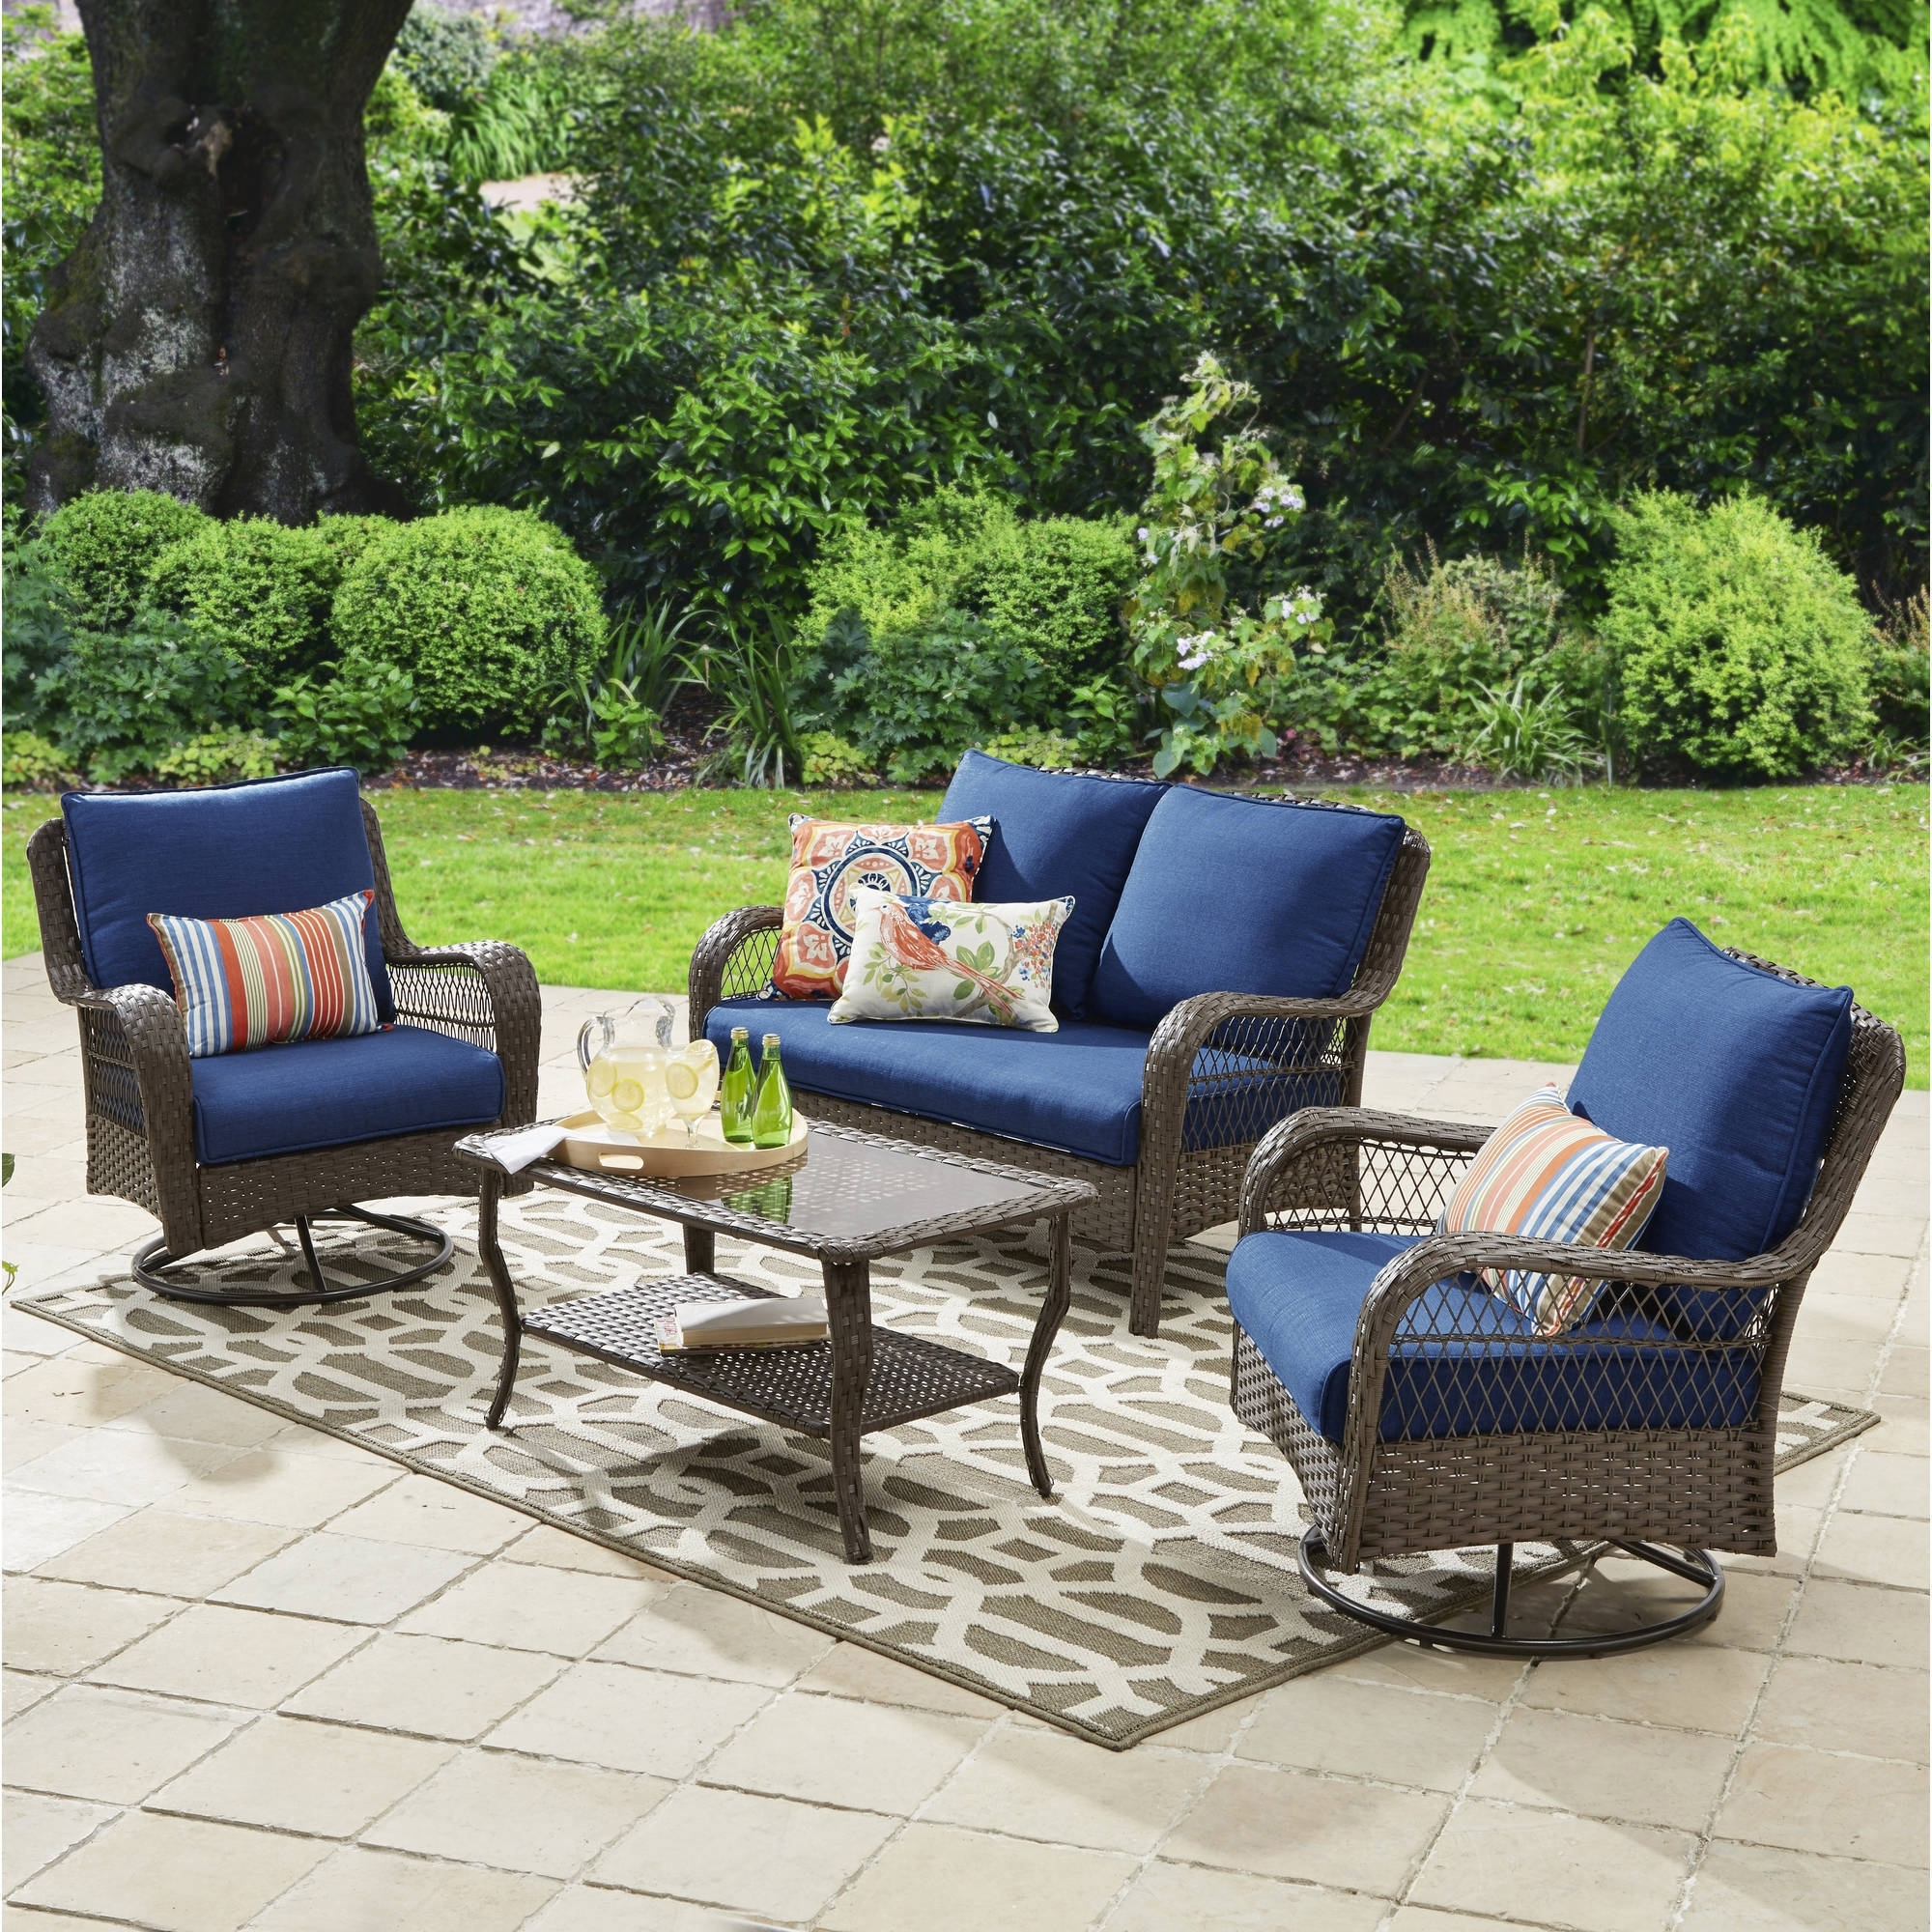 Patio Conversation Sets At Walmart For Current Better Homes And Gardens Colebrook 4 Piece Outdoor Conversation Set (View 10 of 20)